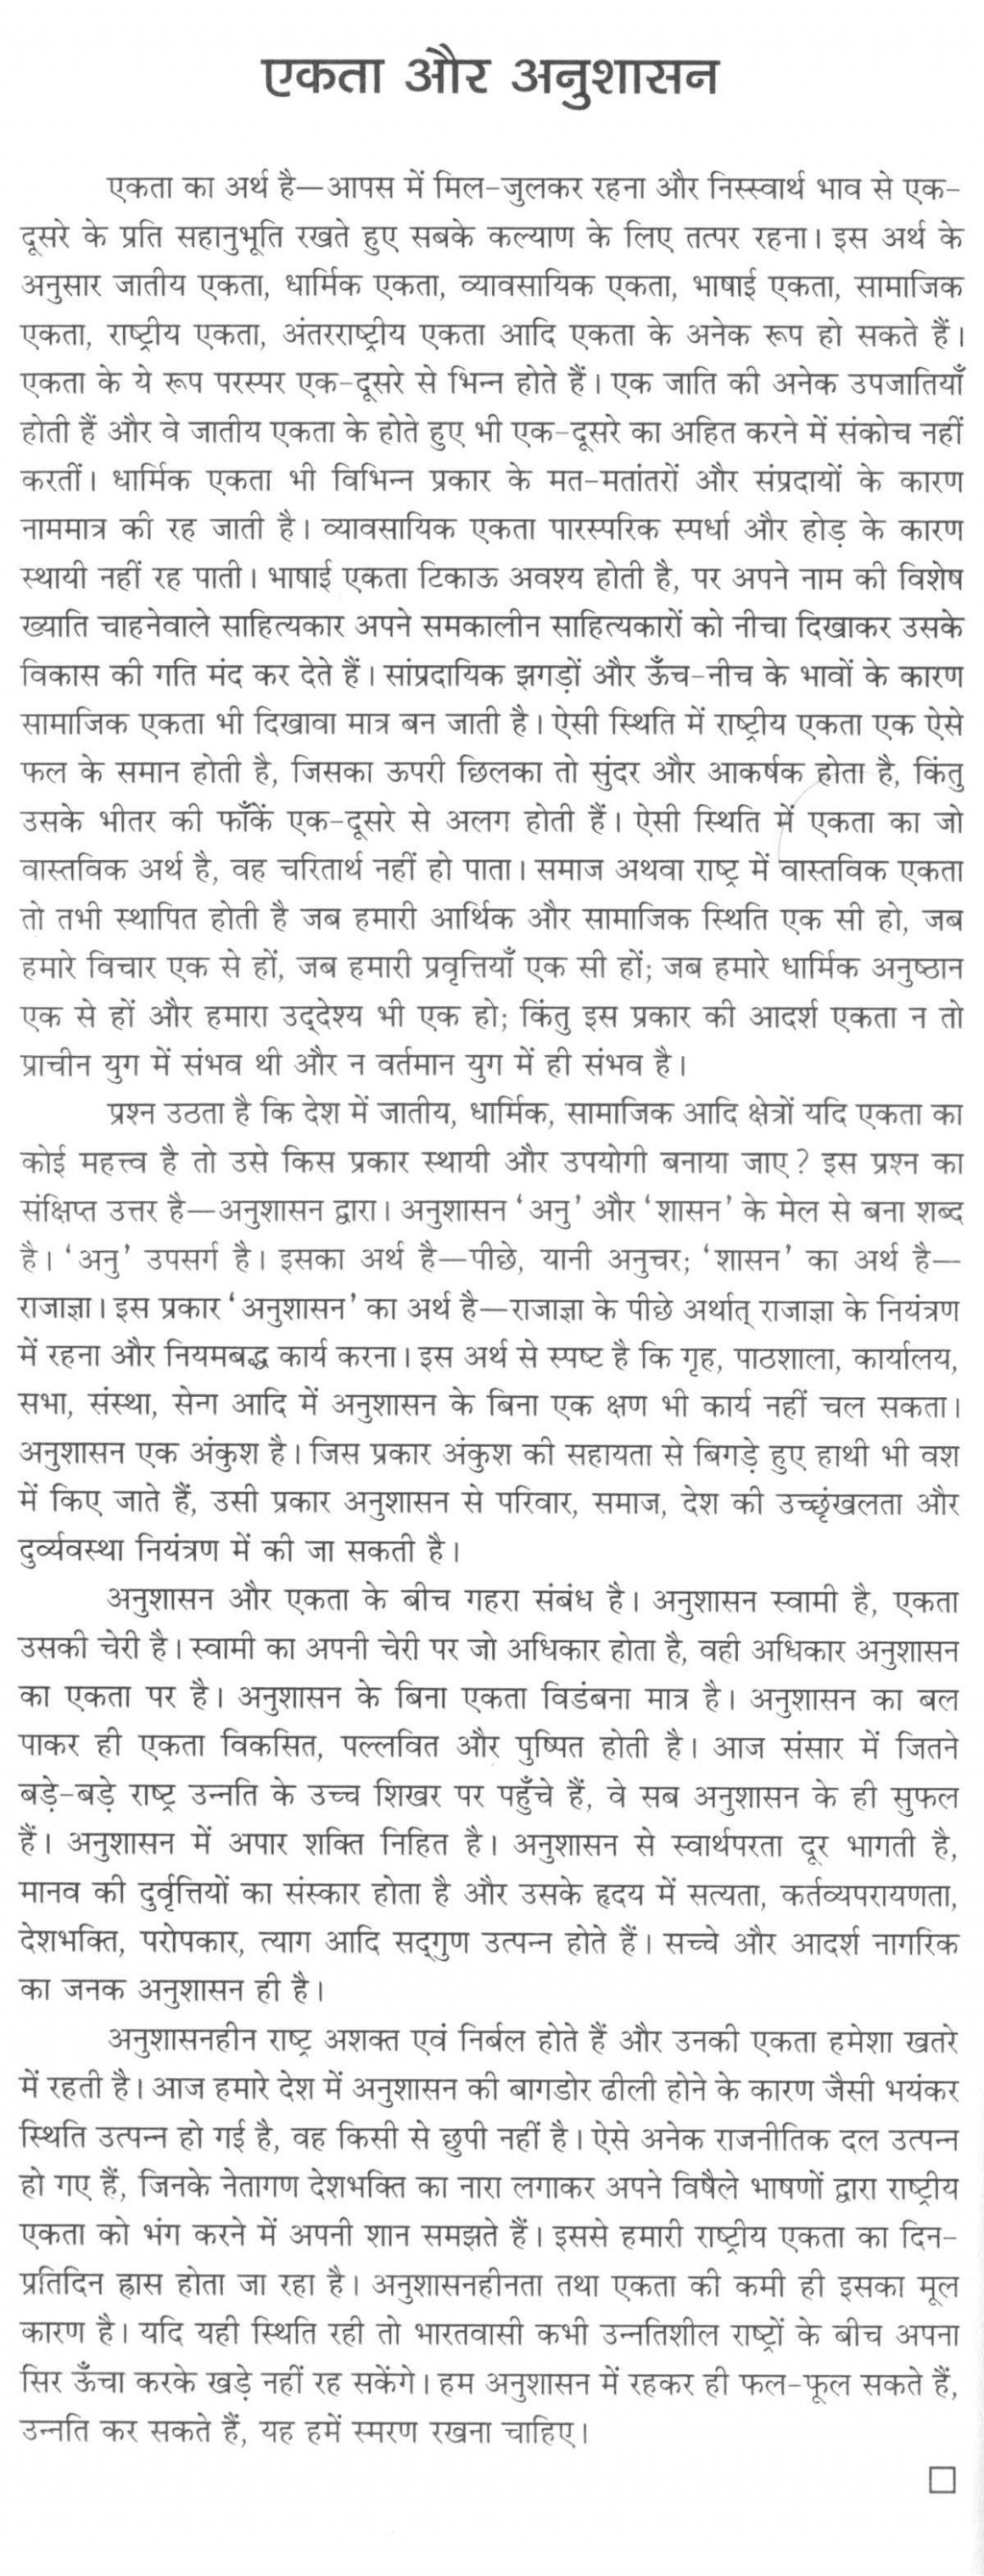 006 Essay Example Best Solutions Of On Unity In Diversity Gxart Stunning Culture India Fascinating Hindi Importance National Large